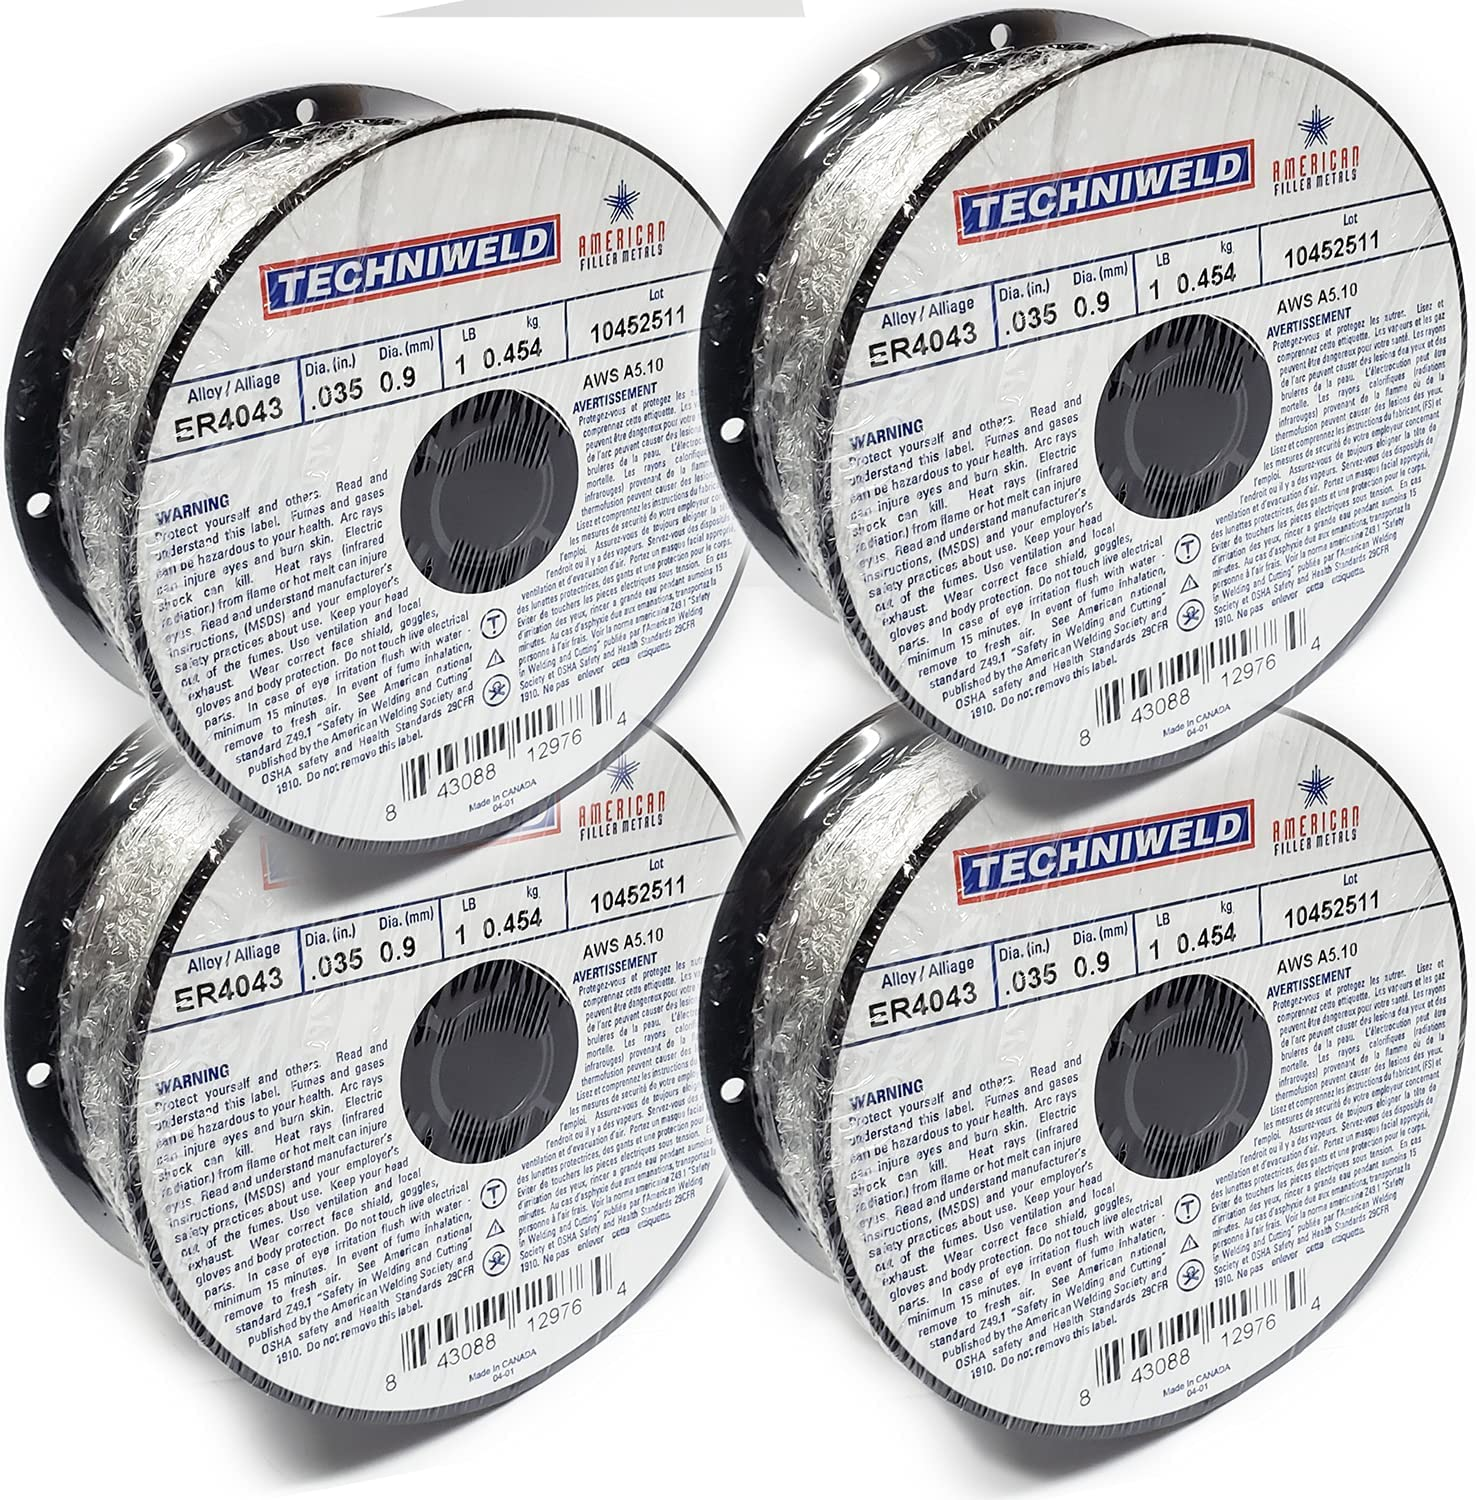 Techniweld ER 4043 ALUMINUM MIG Welding Wire SPOOL 1 X G LB .035 Bombing Direct store free shipping